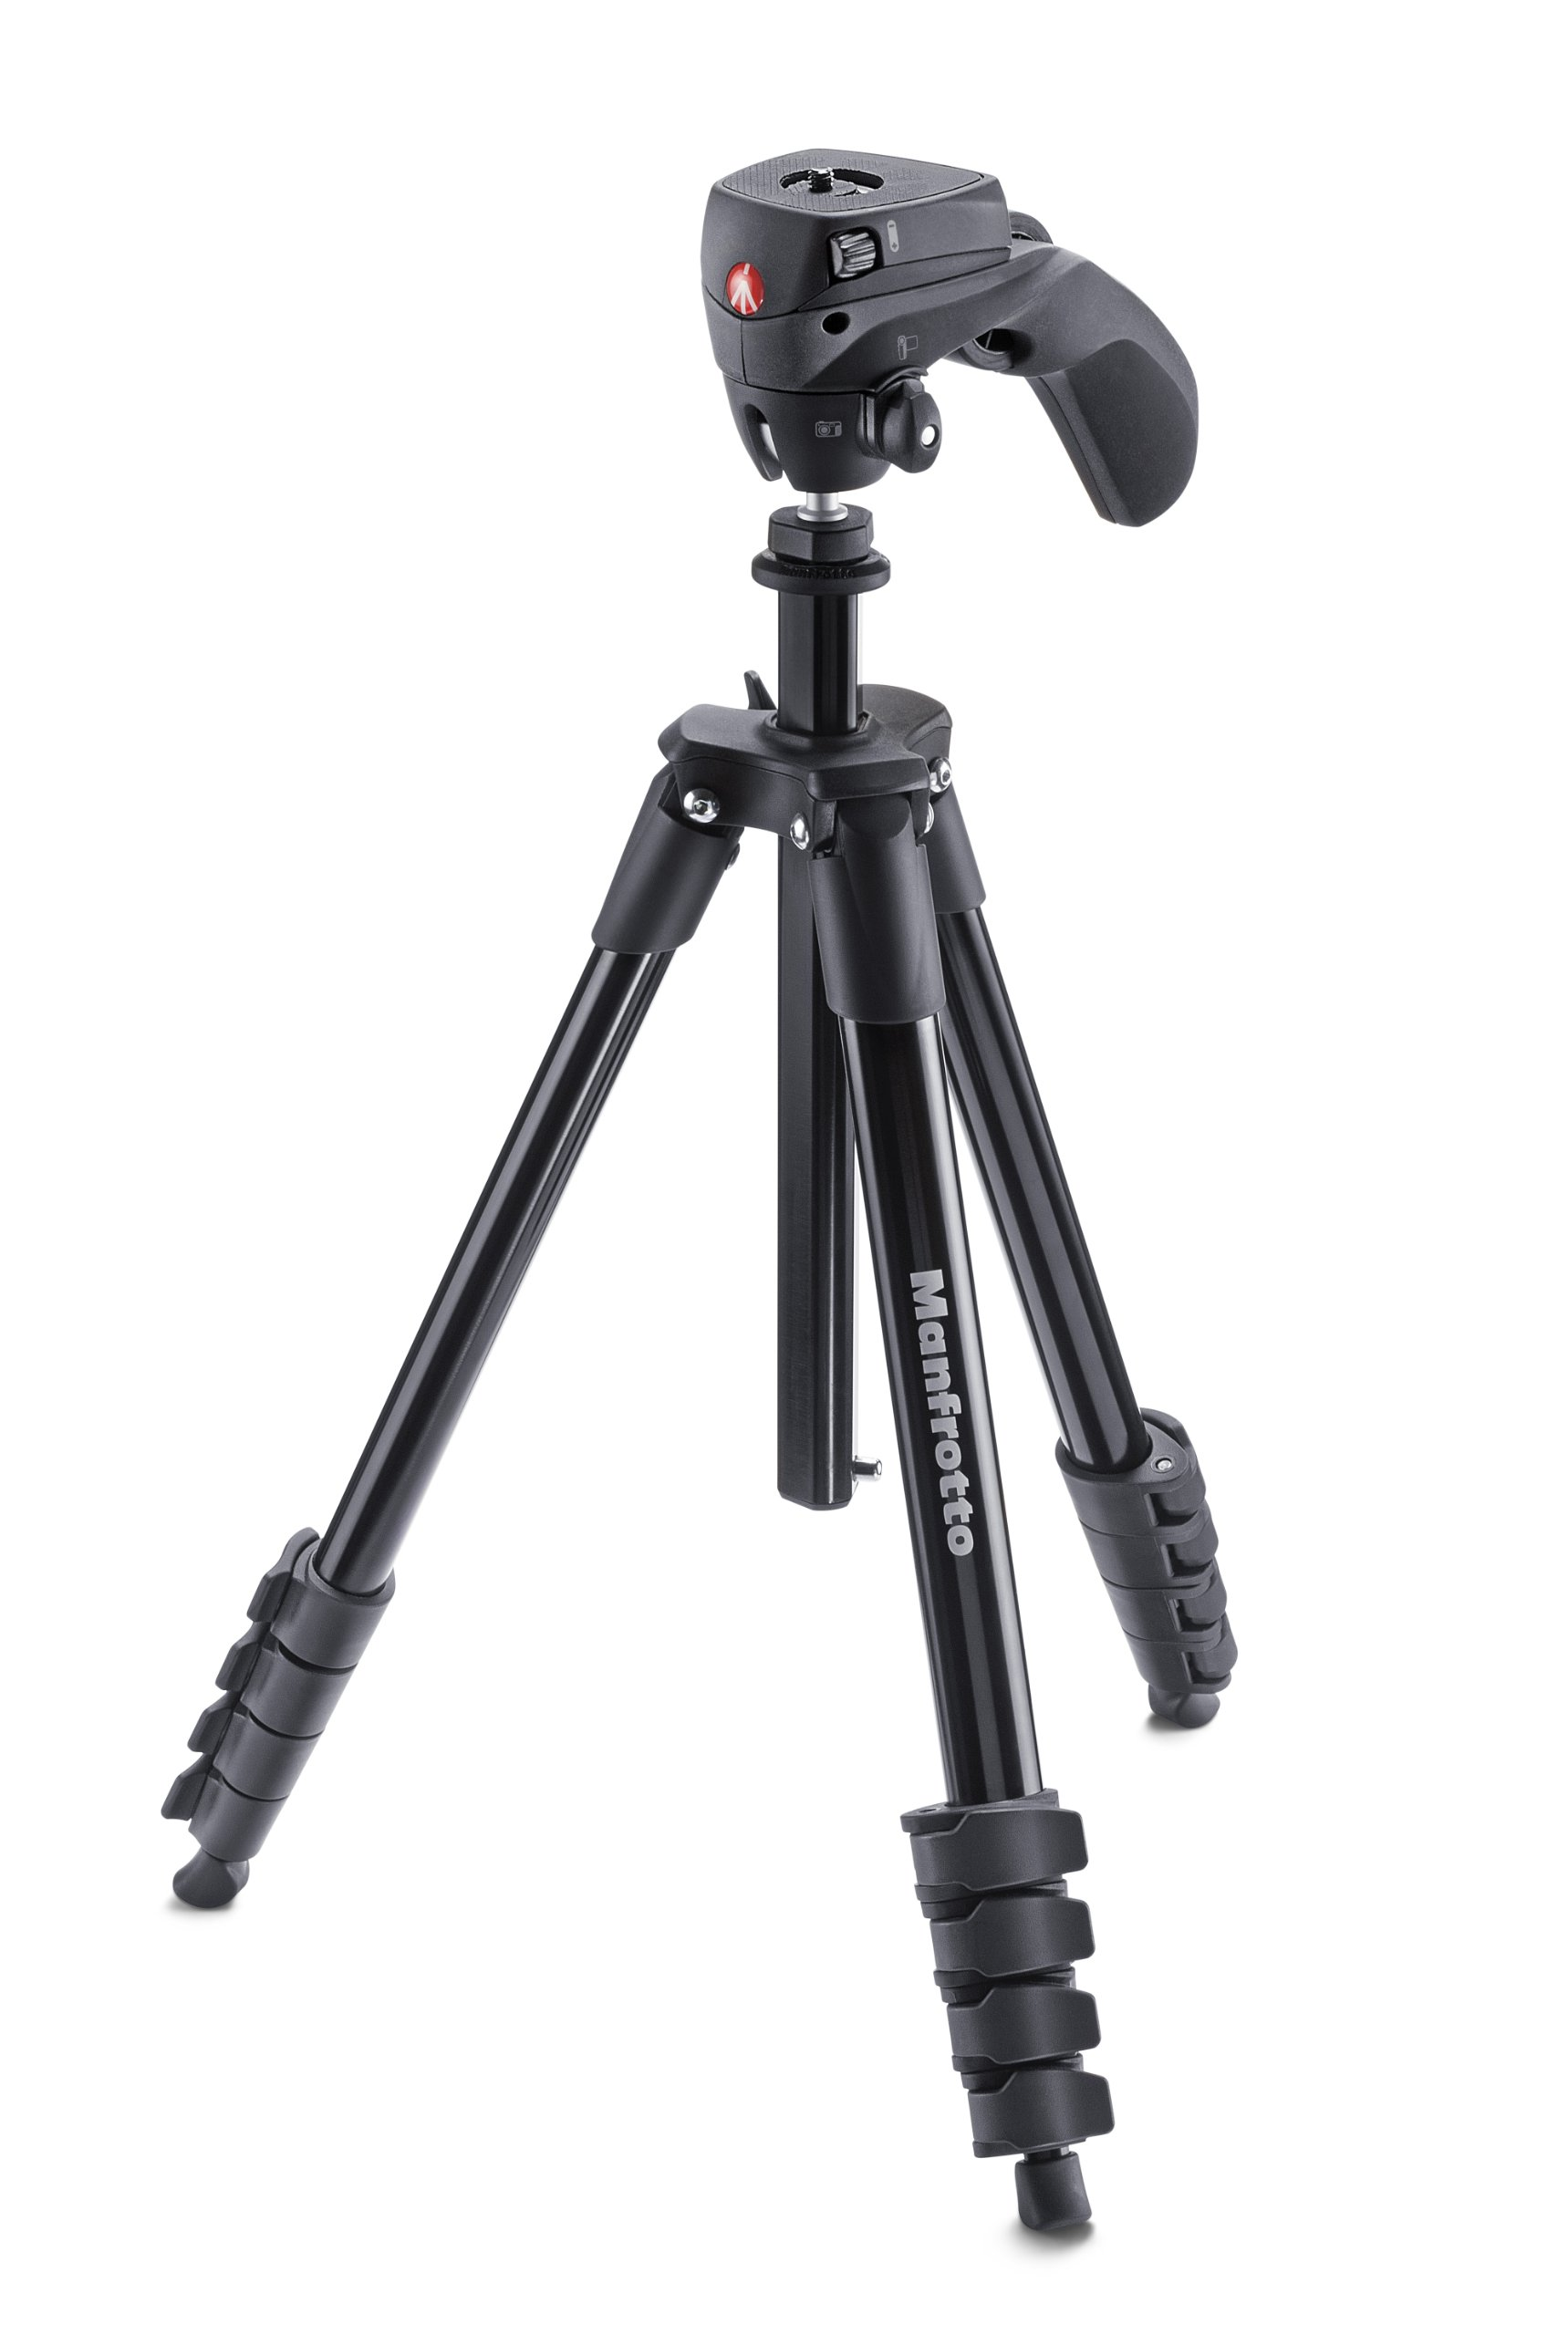 Manfrotto Compact Action Aluminum 5-Section Tripod Kit with Hybrid Head, Black (MKCOMPACTACN-BK) by Manfrotto